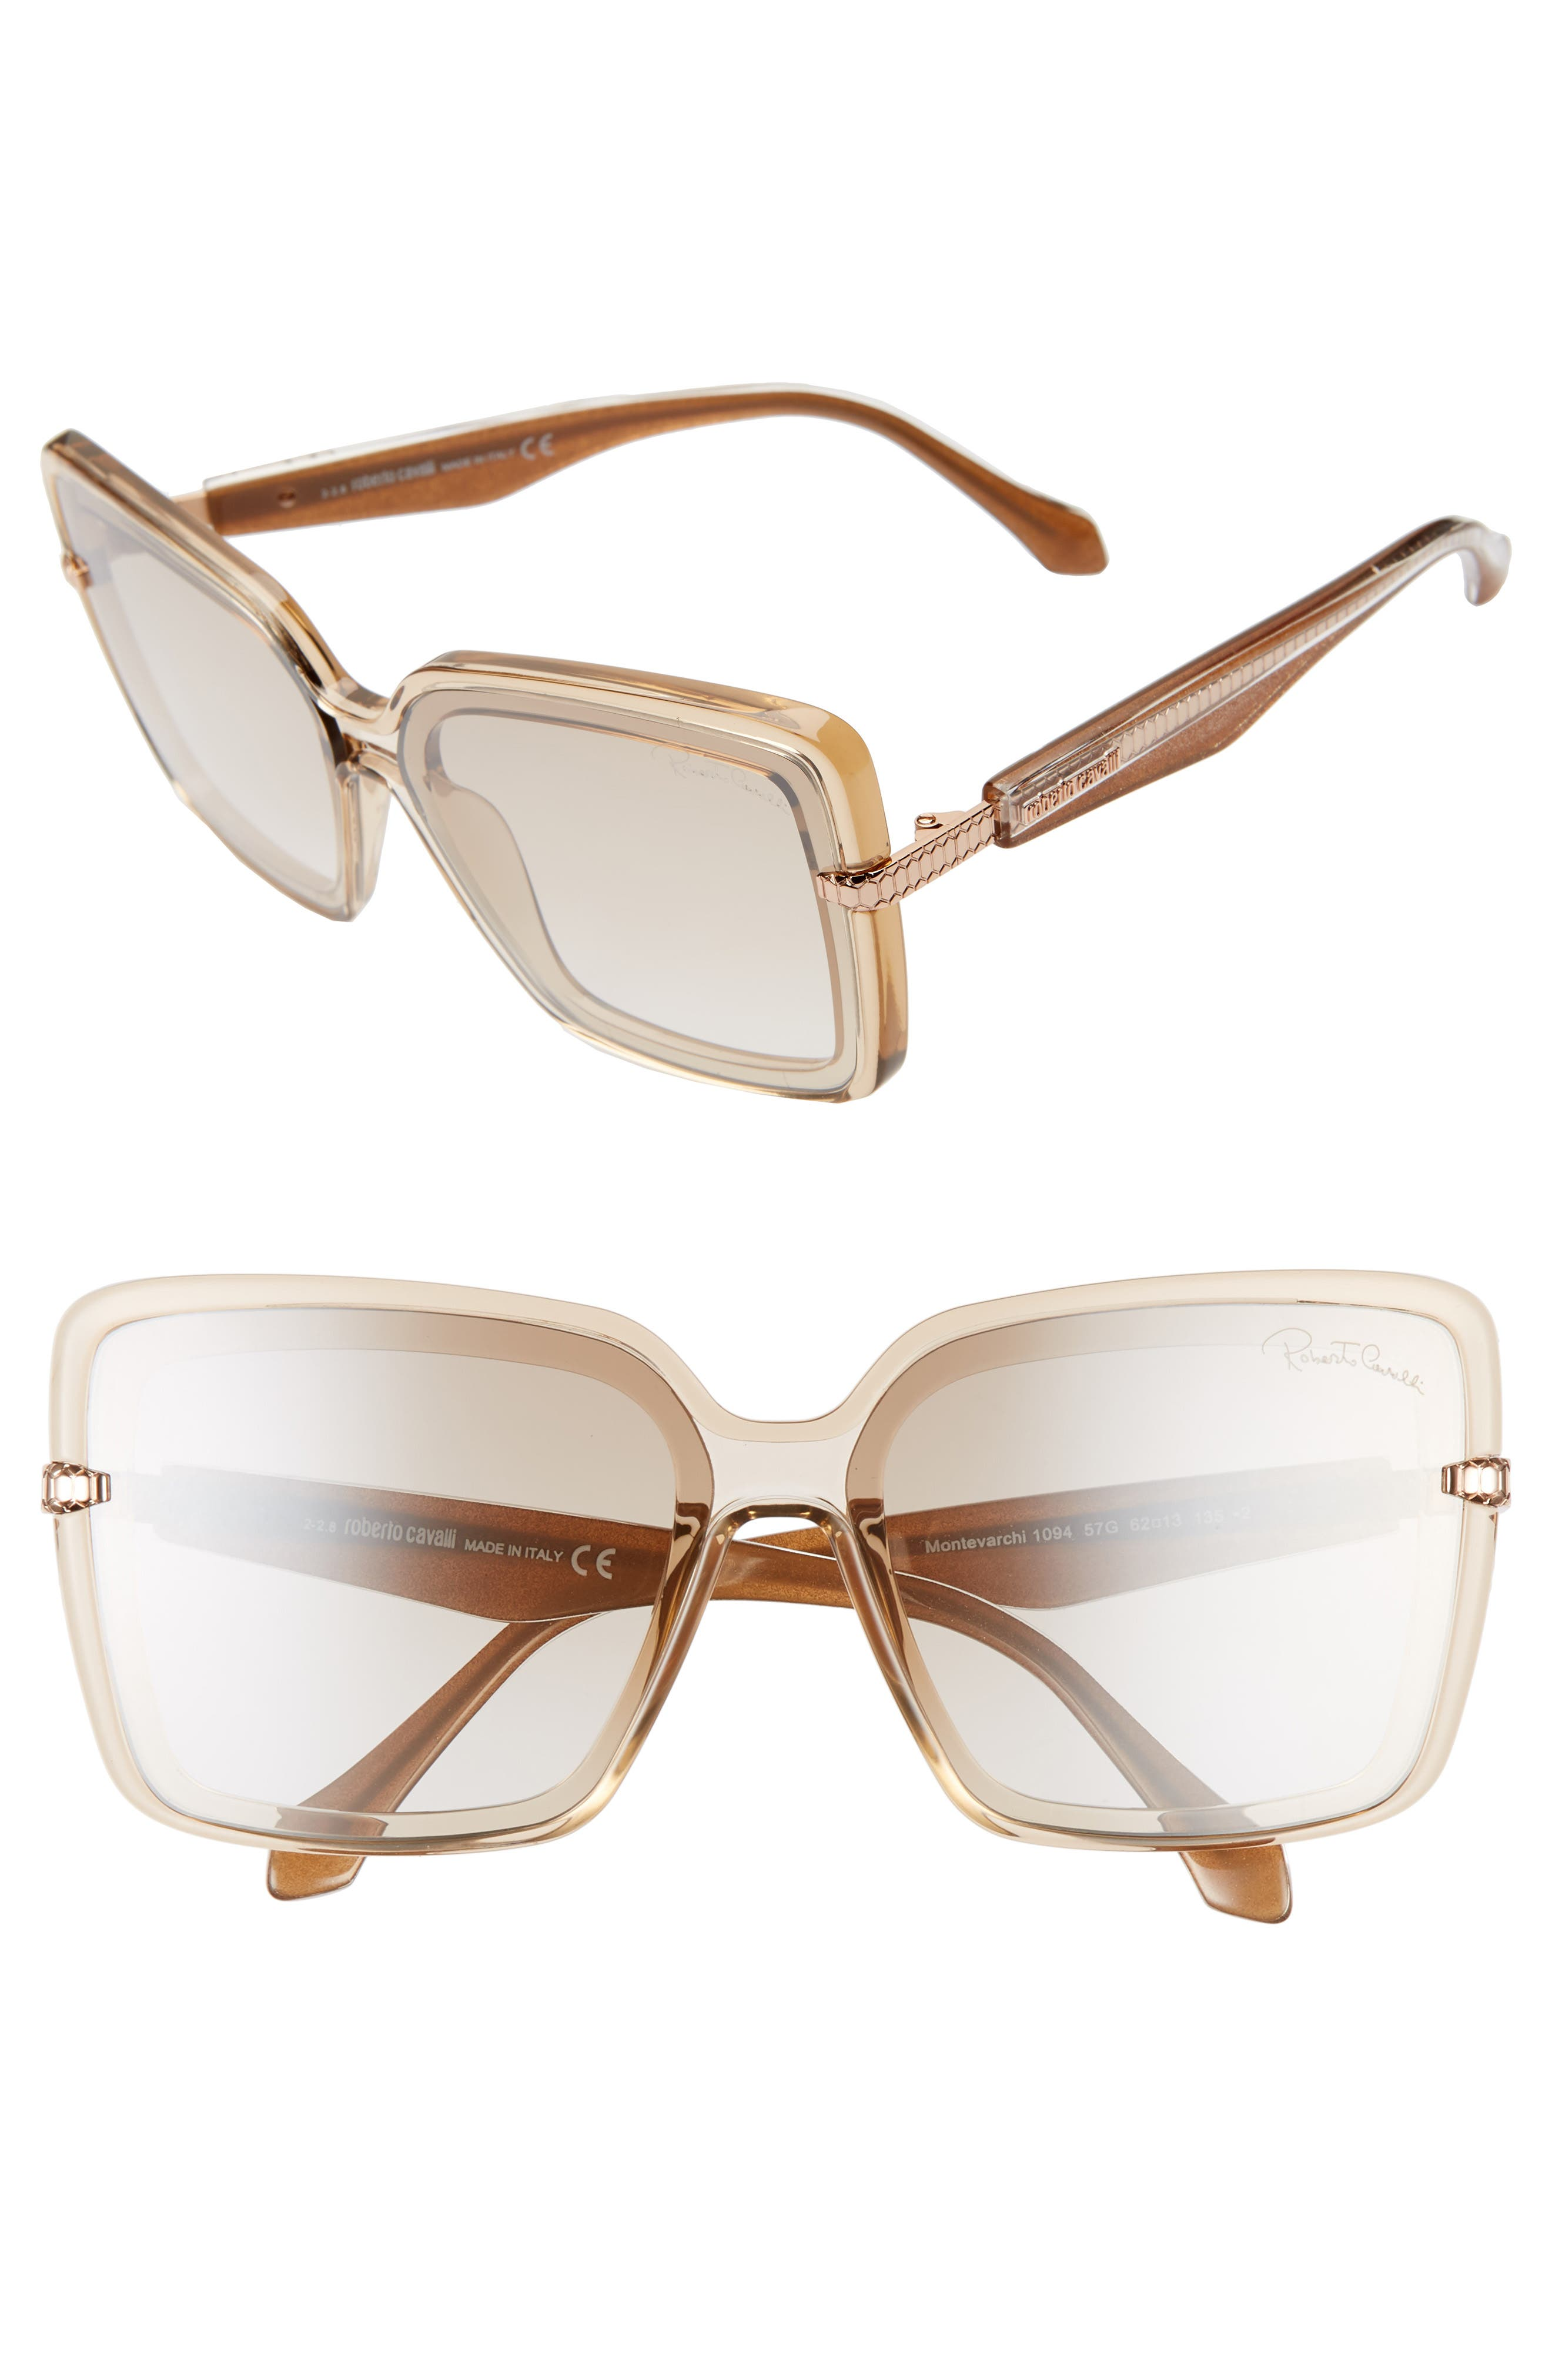 Roberto Cavalli 62Mm Oversize Flat Front Butterfly Sunglasses - Shiny Beige/ Brown Mirror